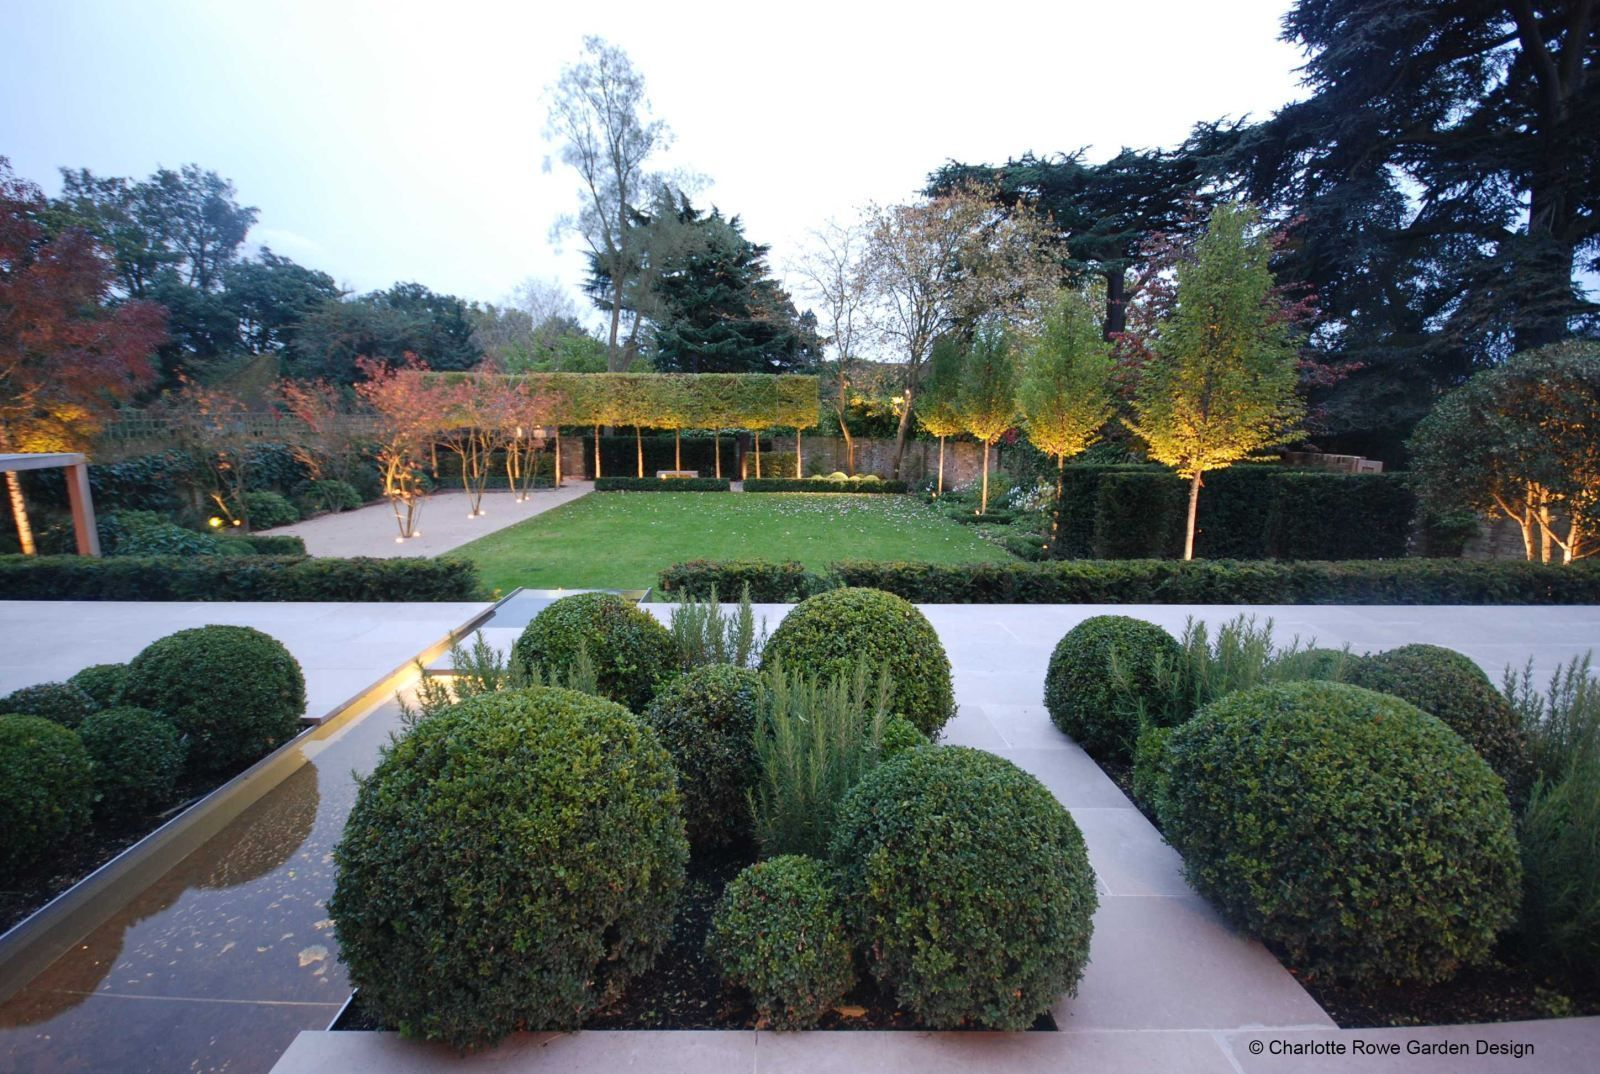 Beautiful winning gardens from the SGD awards in pics #Awards